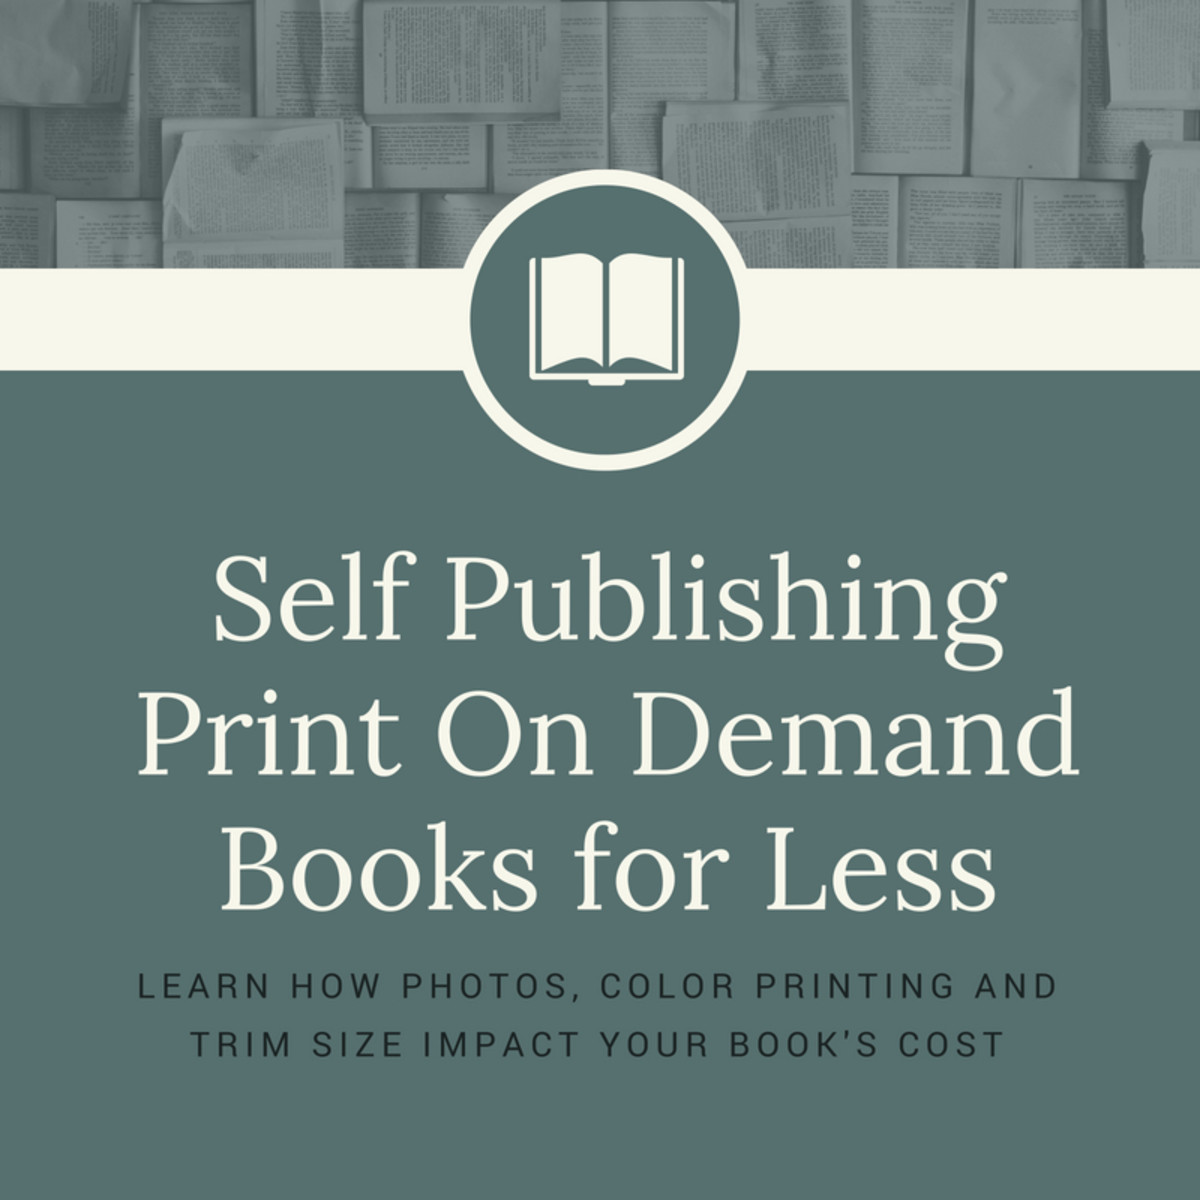 Get some advice for making POD books more affordable.